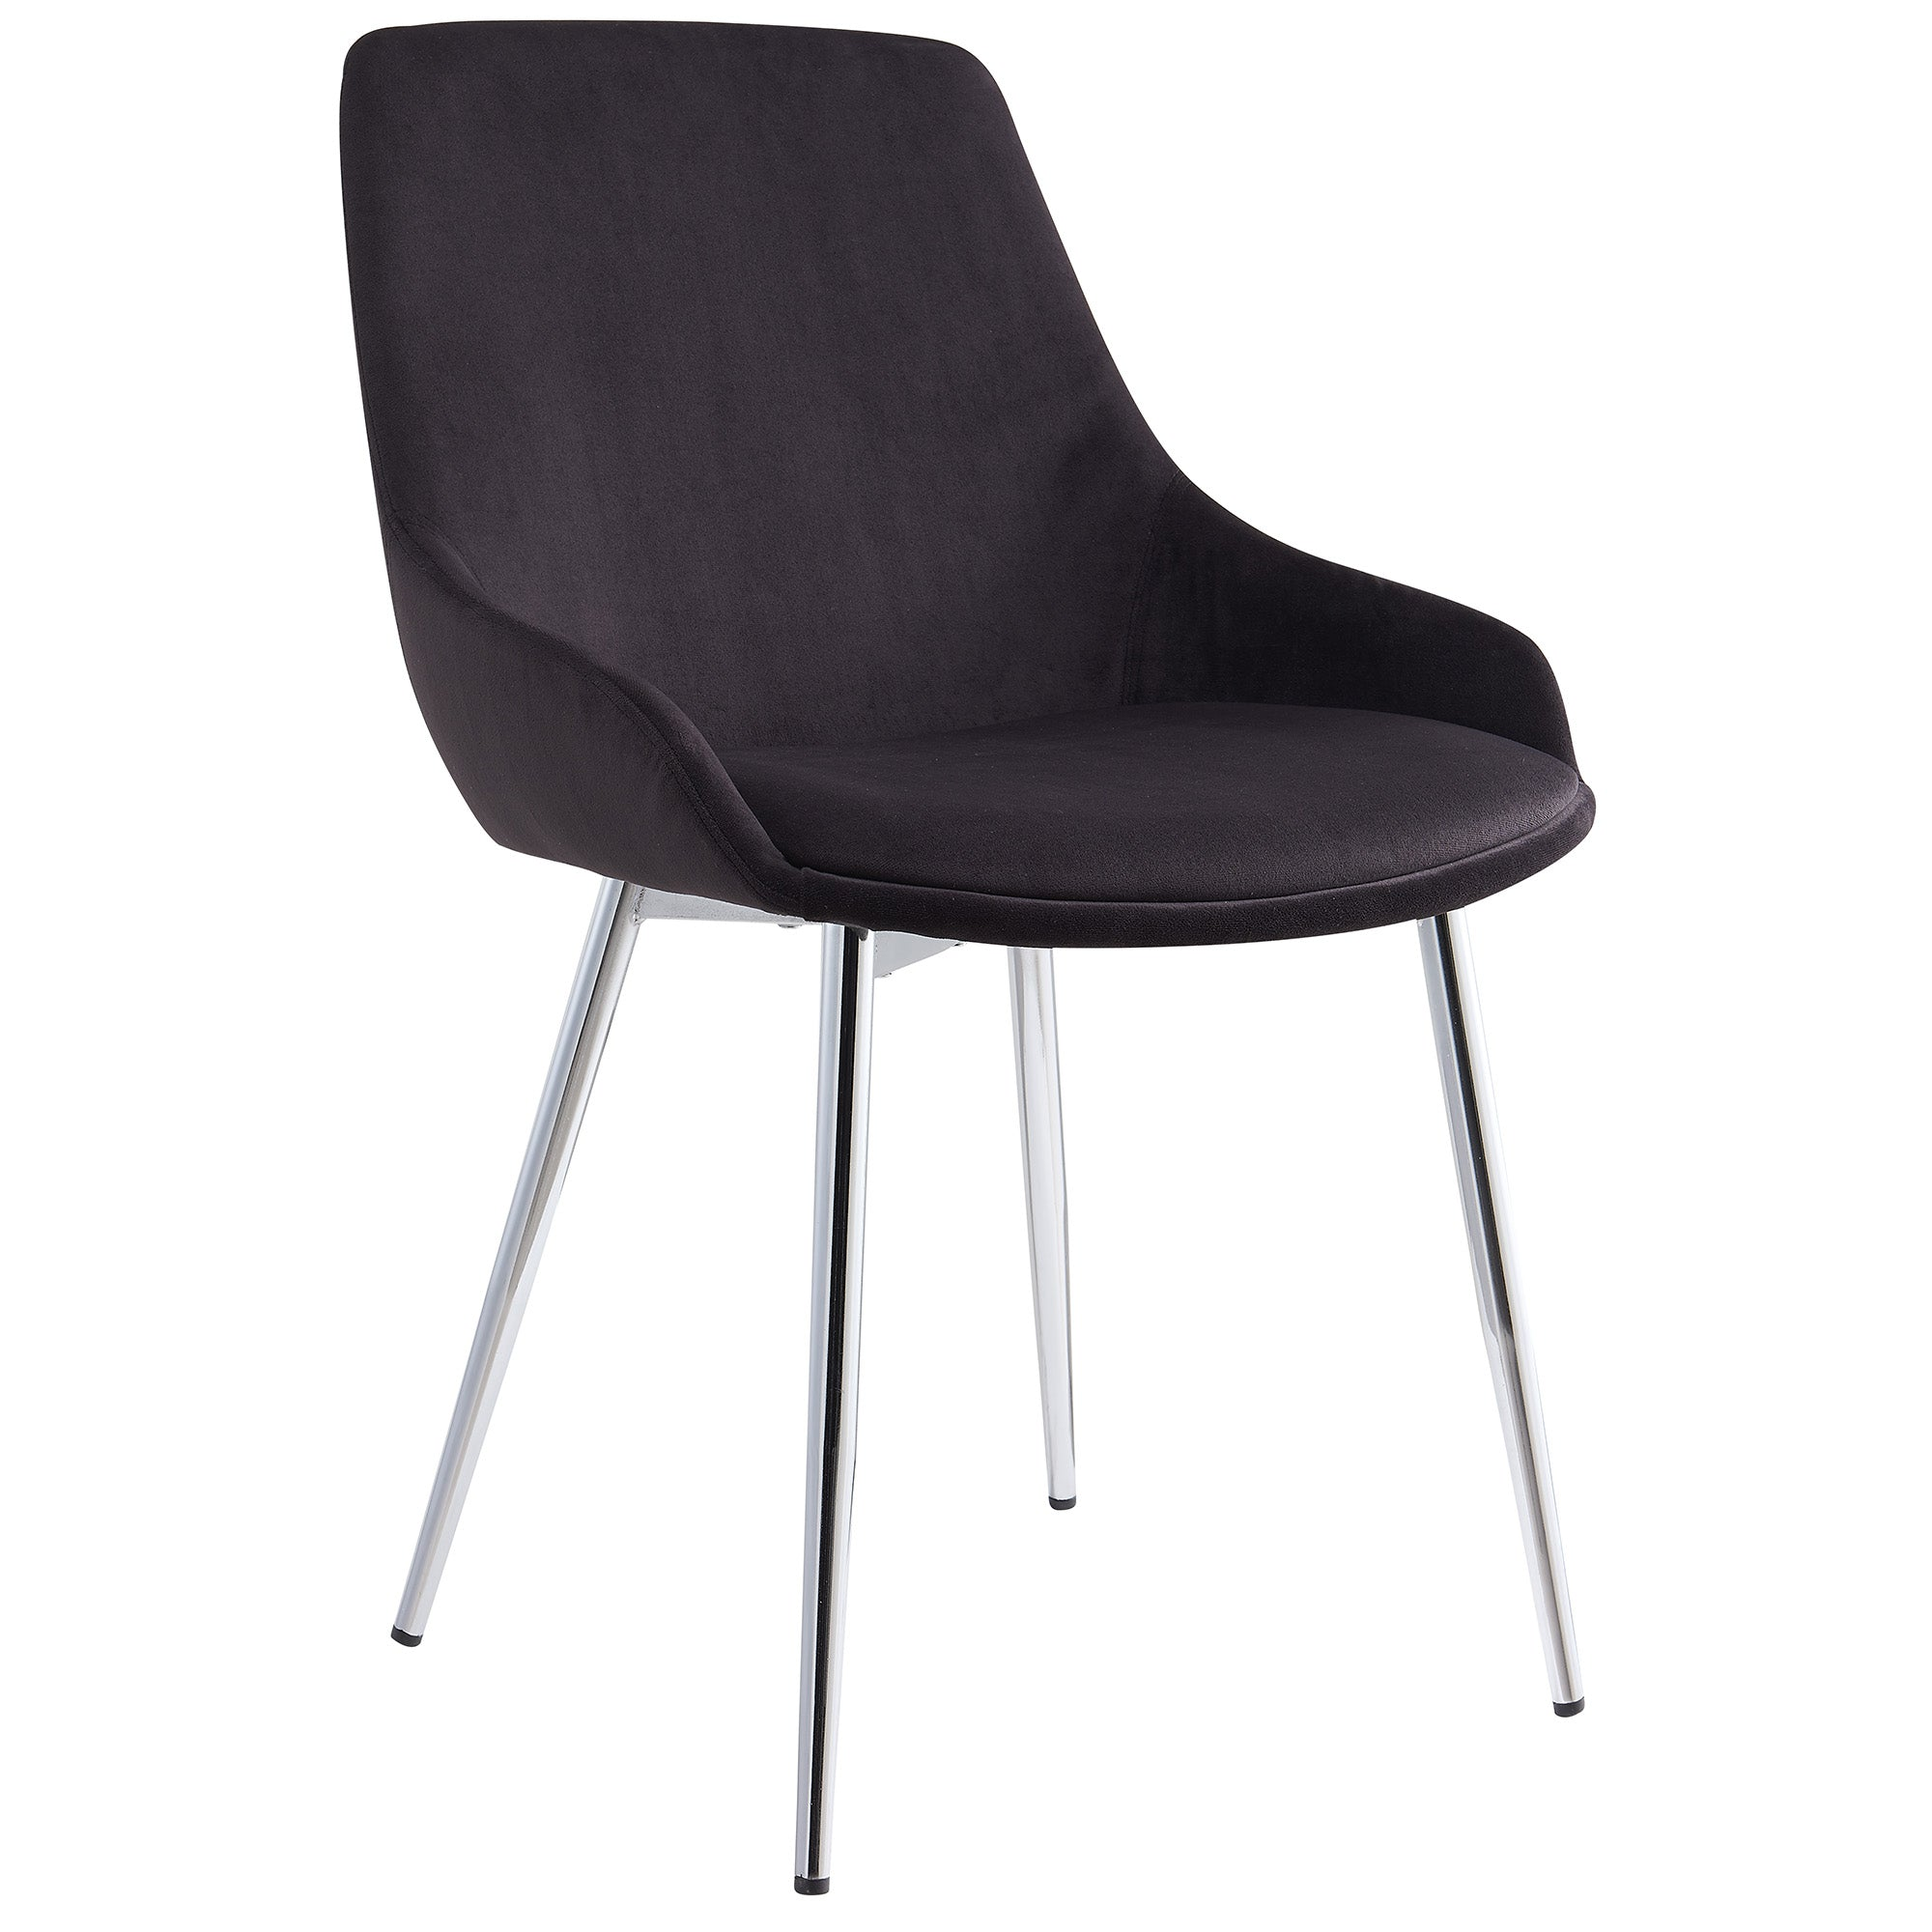 Cassidy Dining Chair - Black